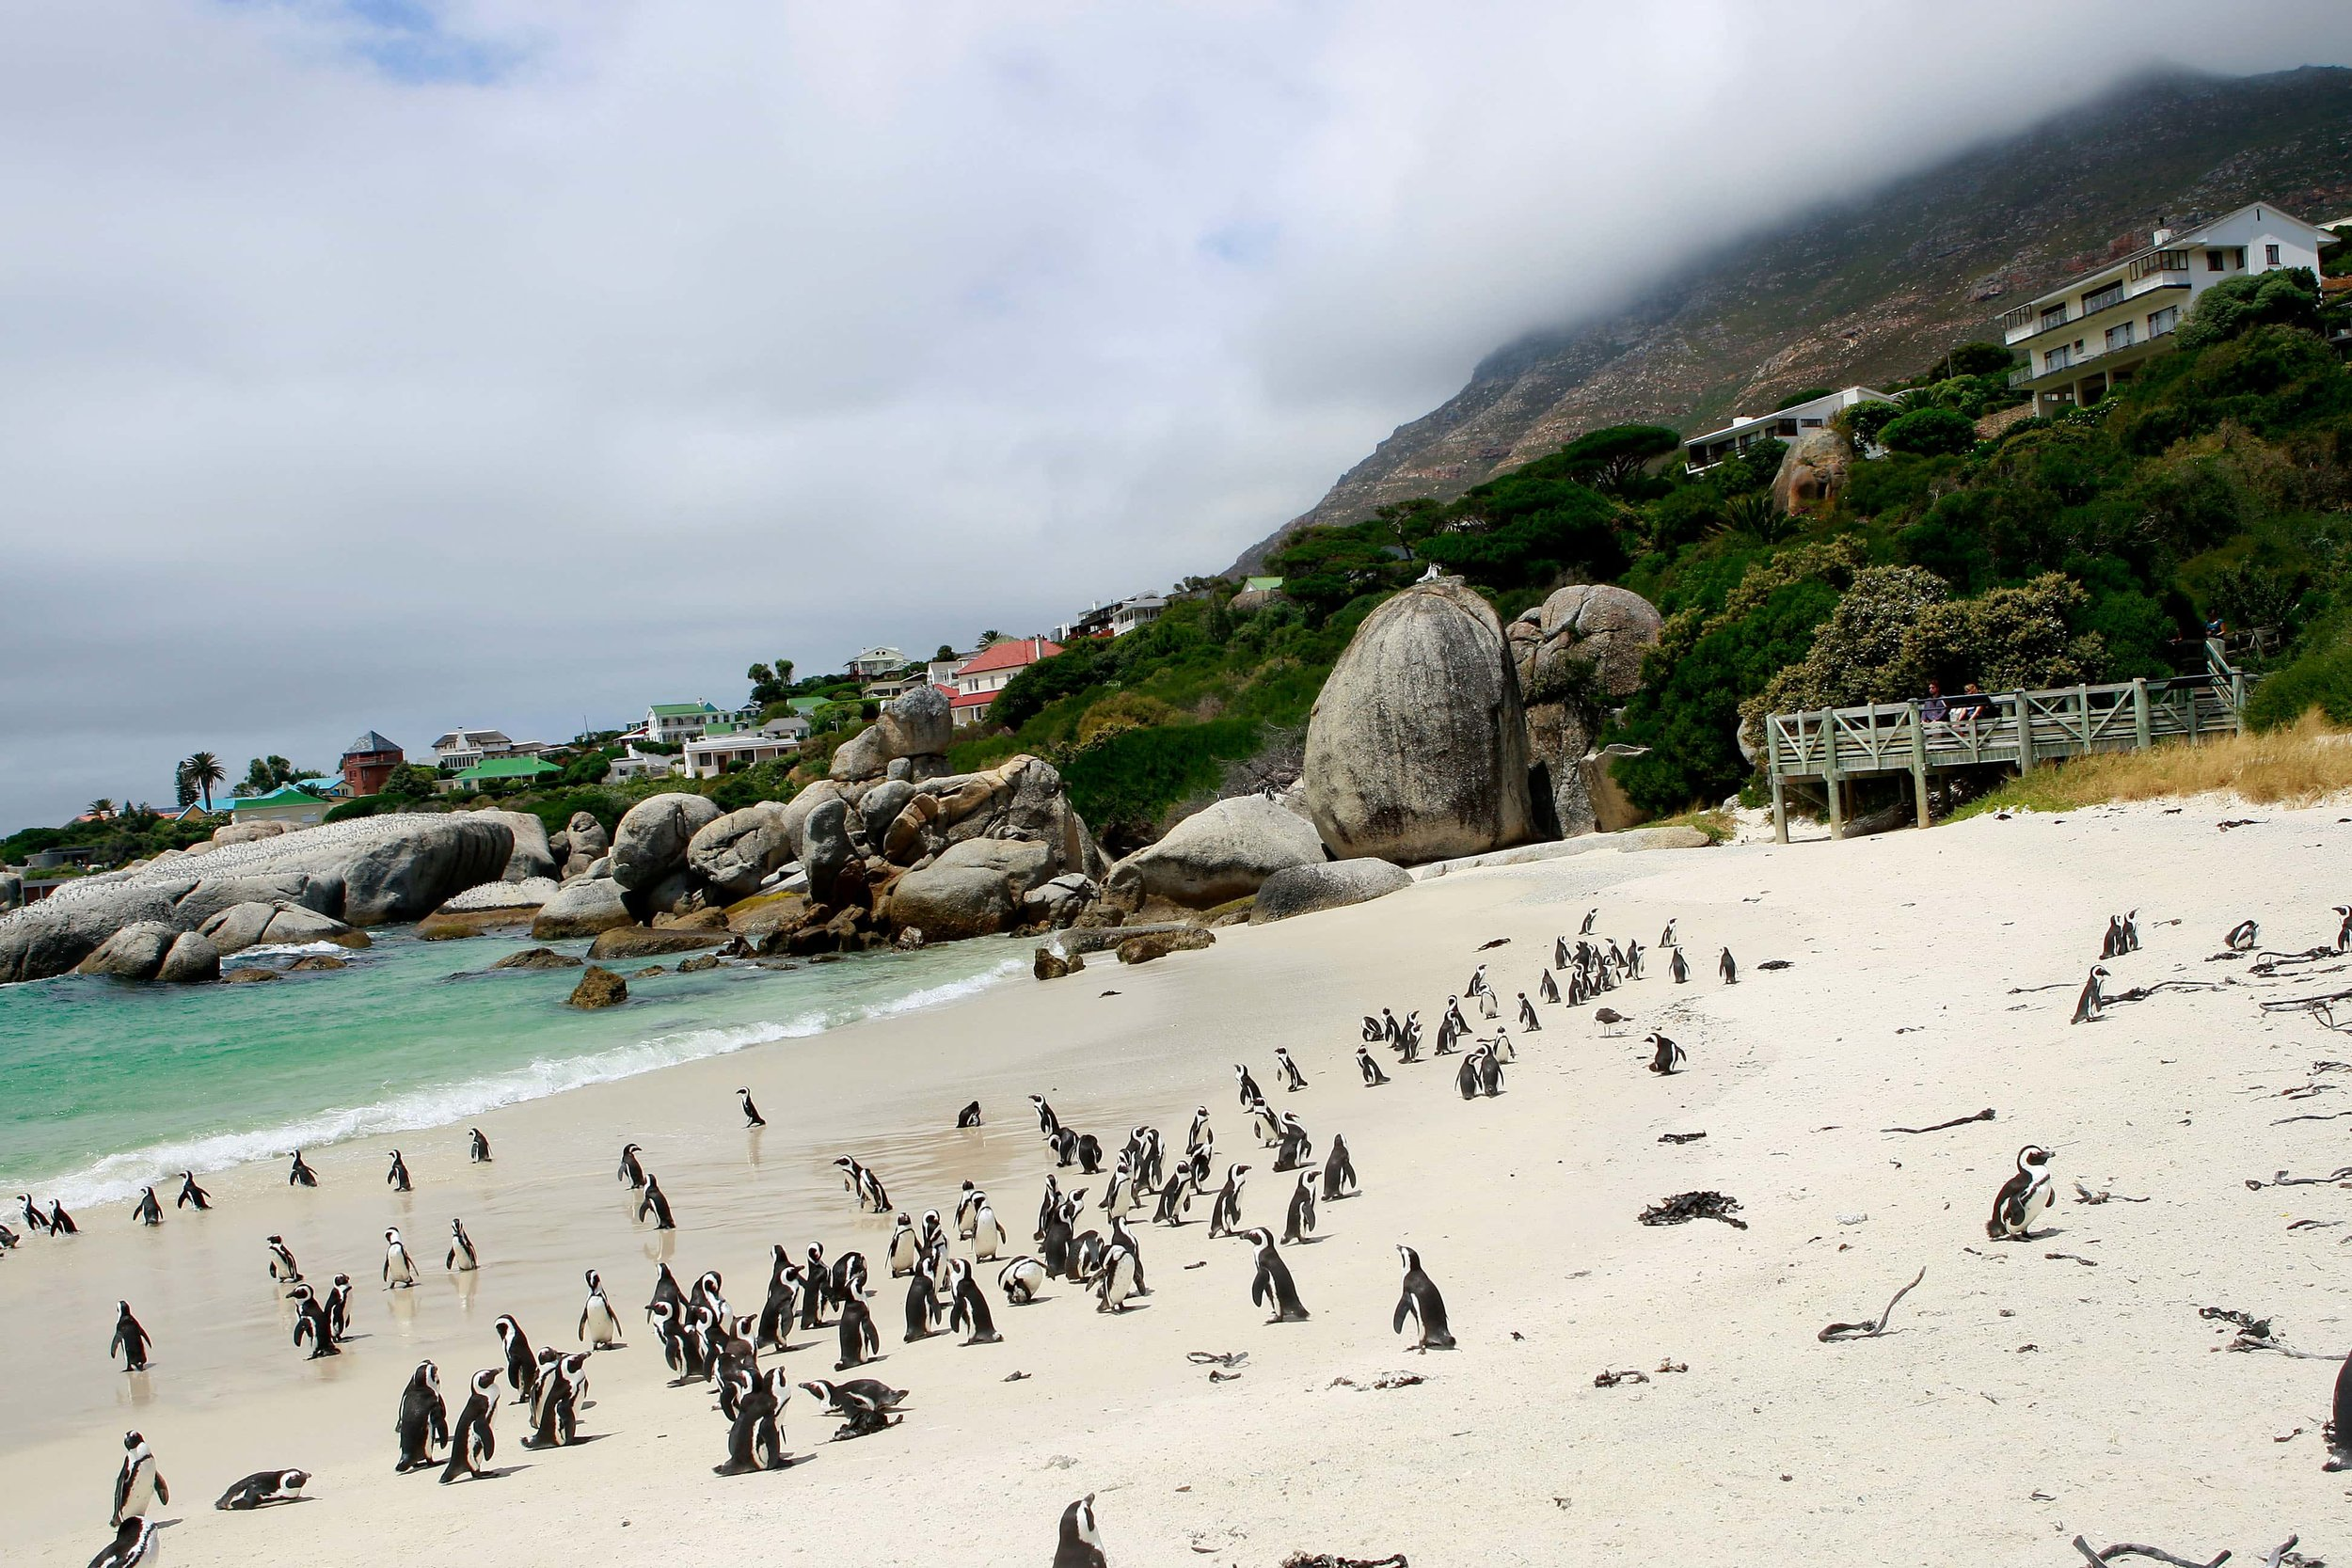 General CTT Images - Beaches - Penguins at Boulders Beach_CTT.jpg-min.jpg